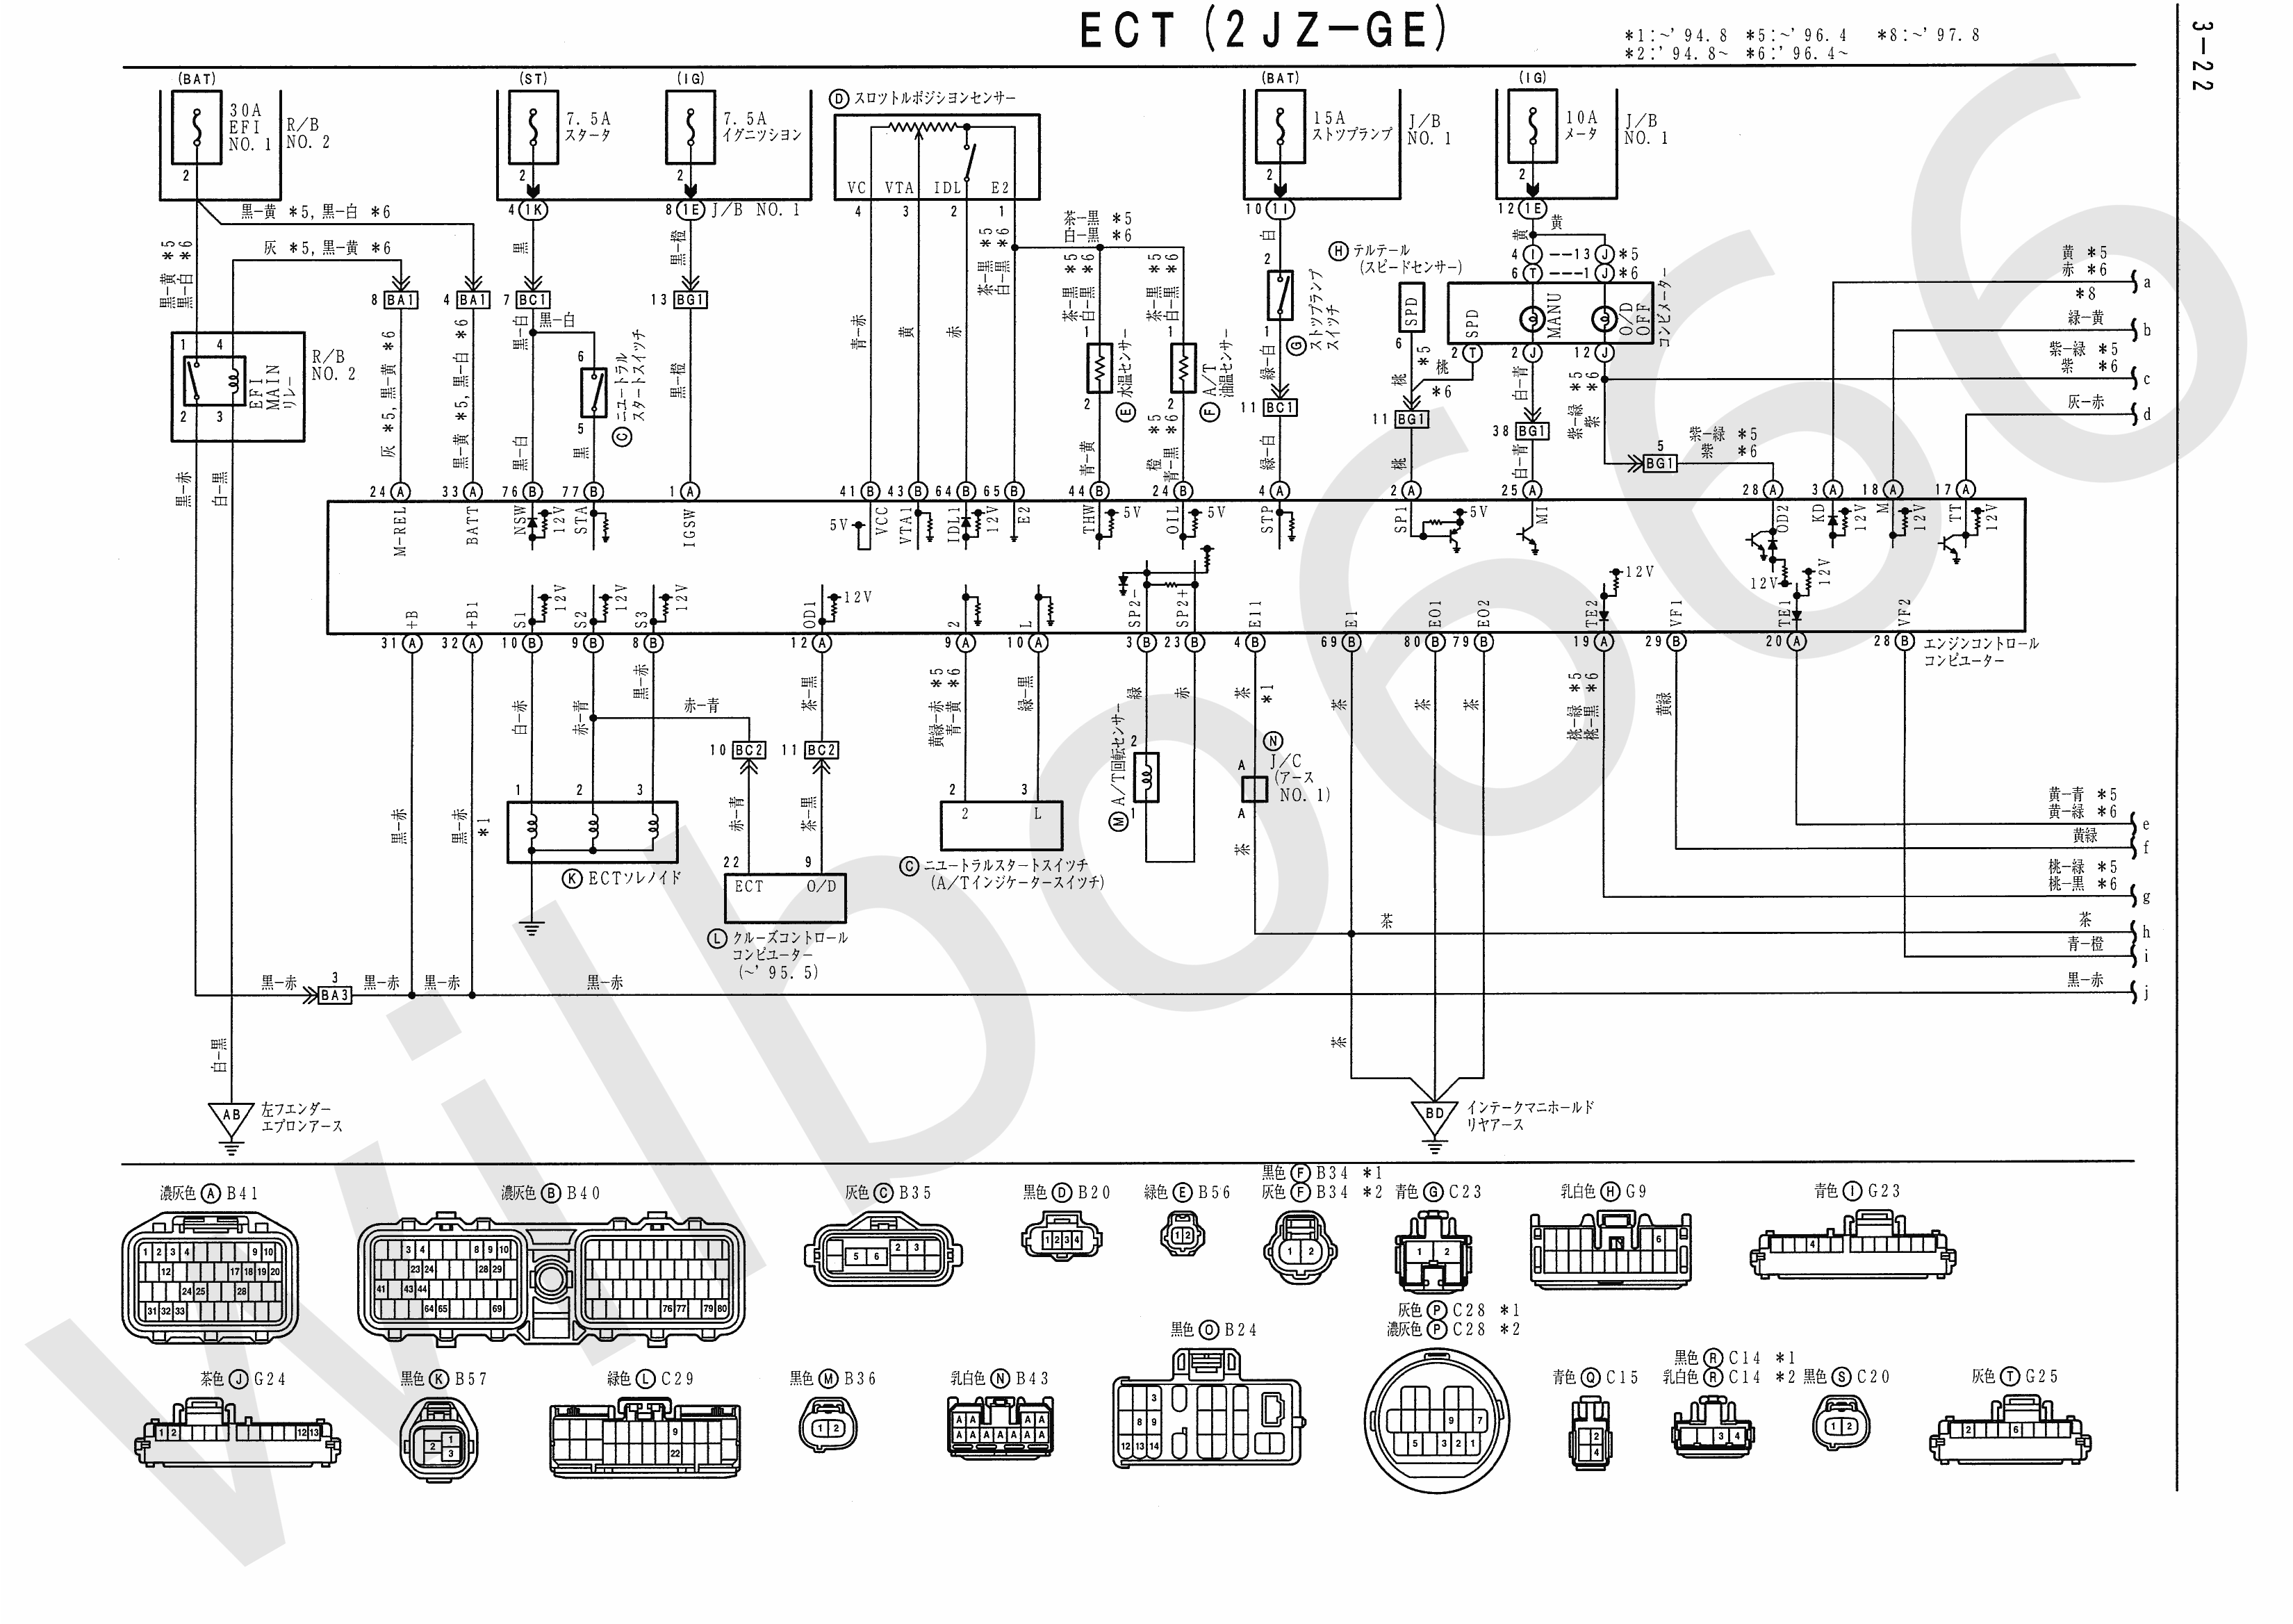 1989 supra turbo engine diagram wiring diagram todays